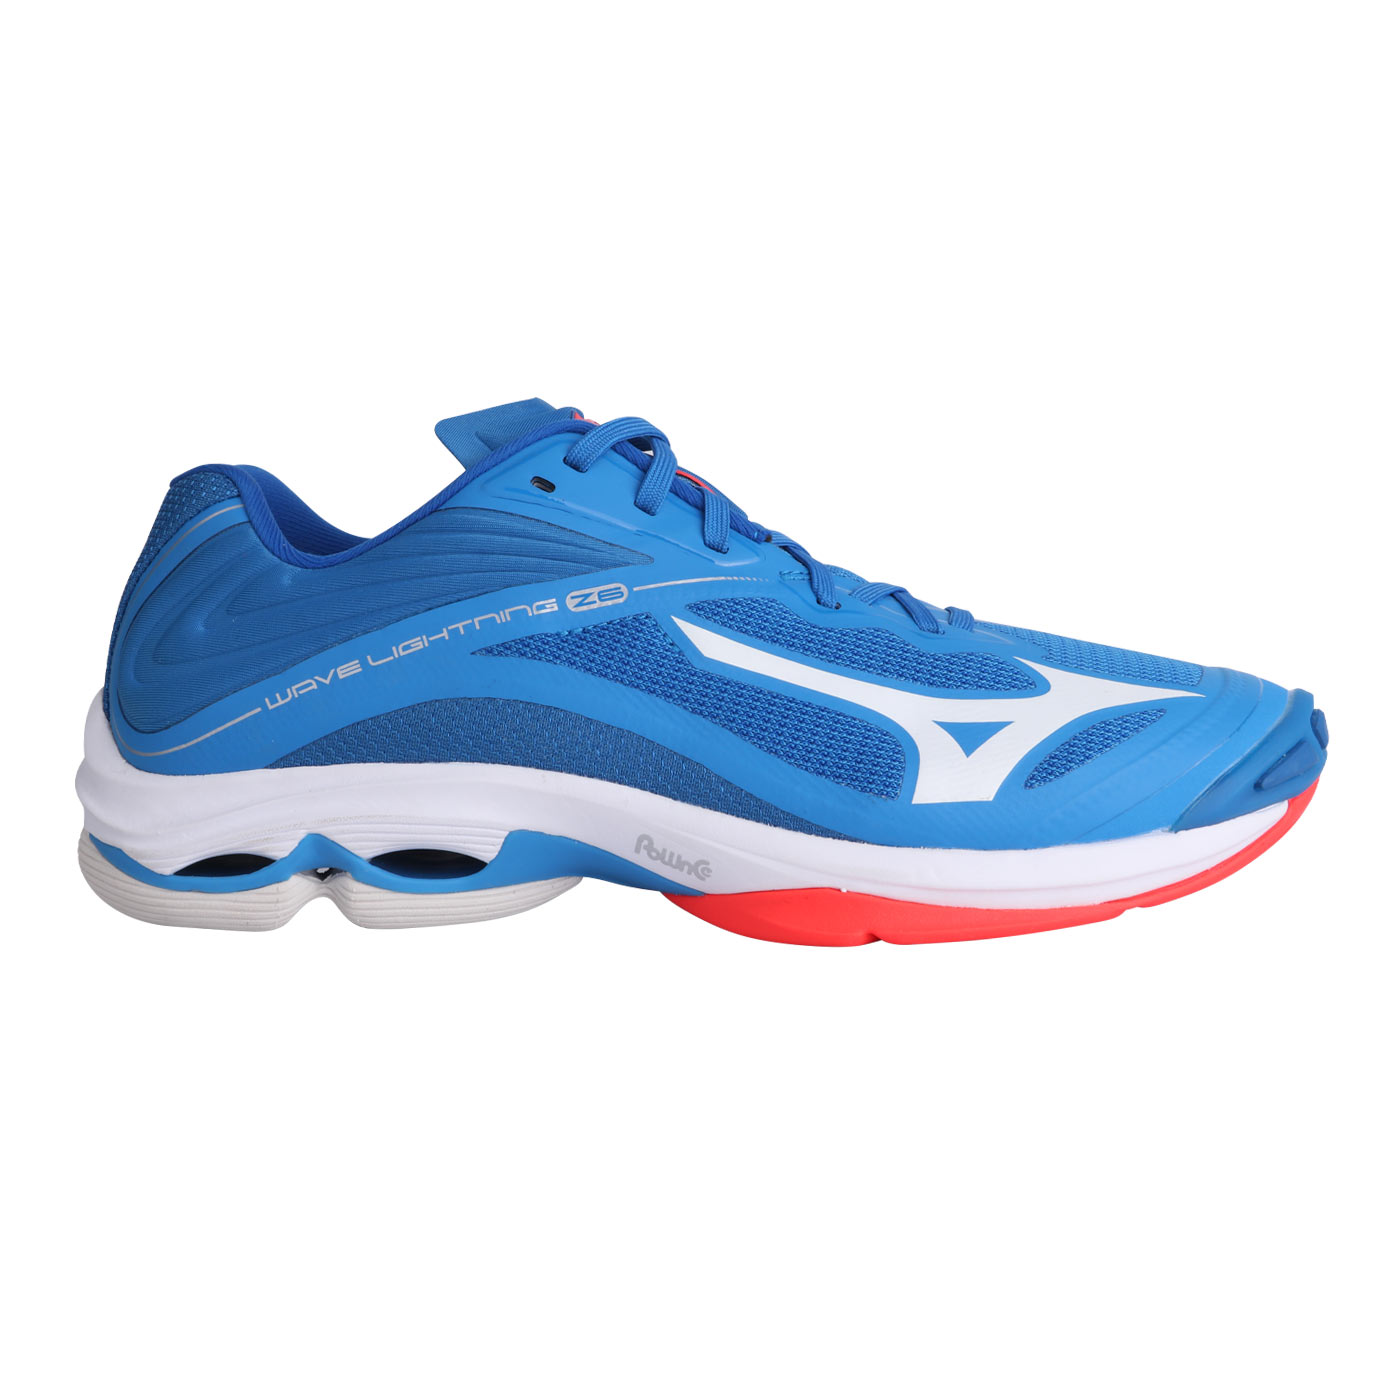 WAVE LIGHTNING Z6-FRENCH BLUE/WHITE/IGNITION RED